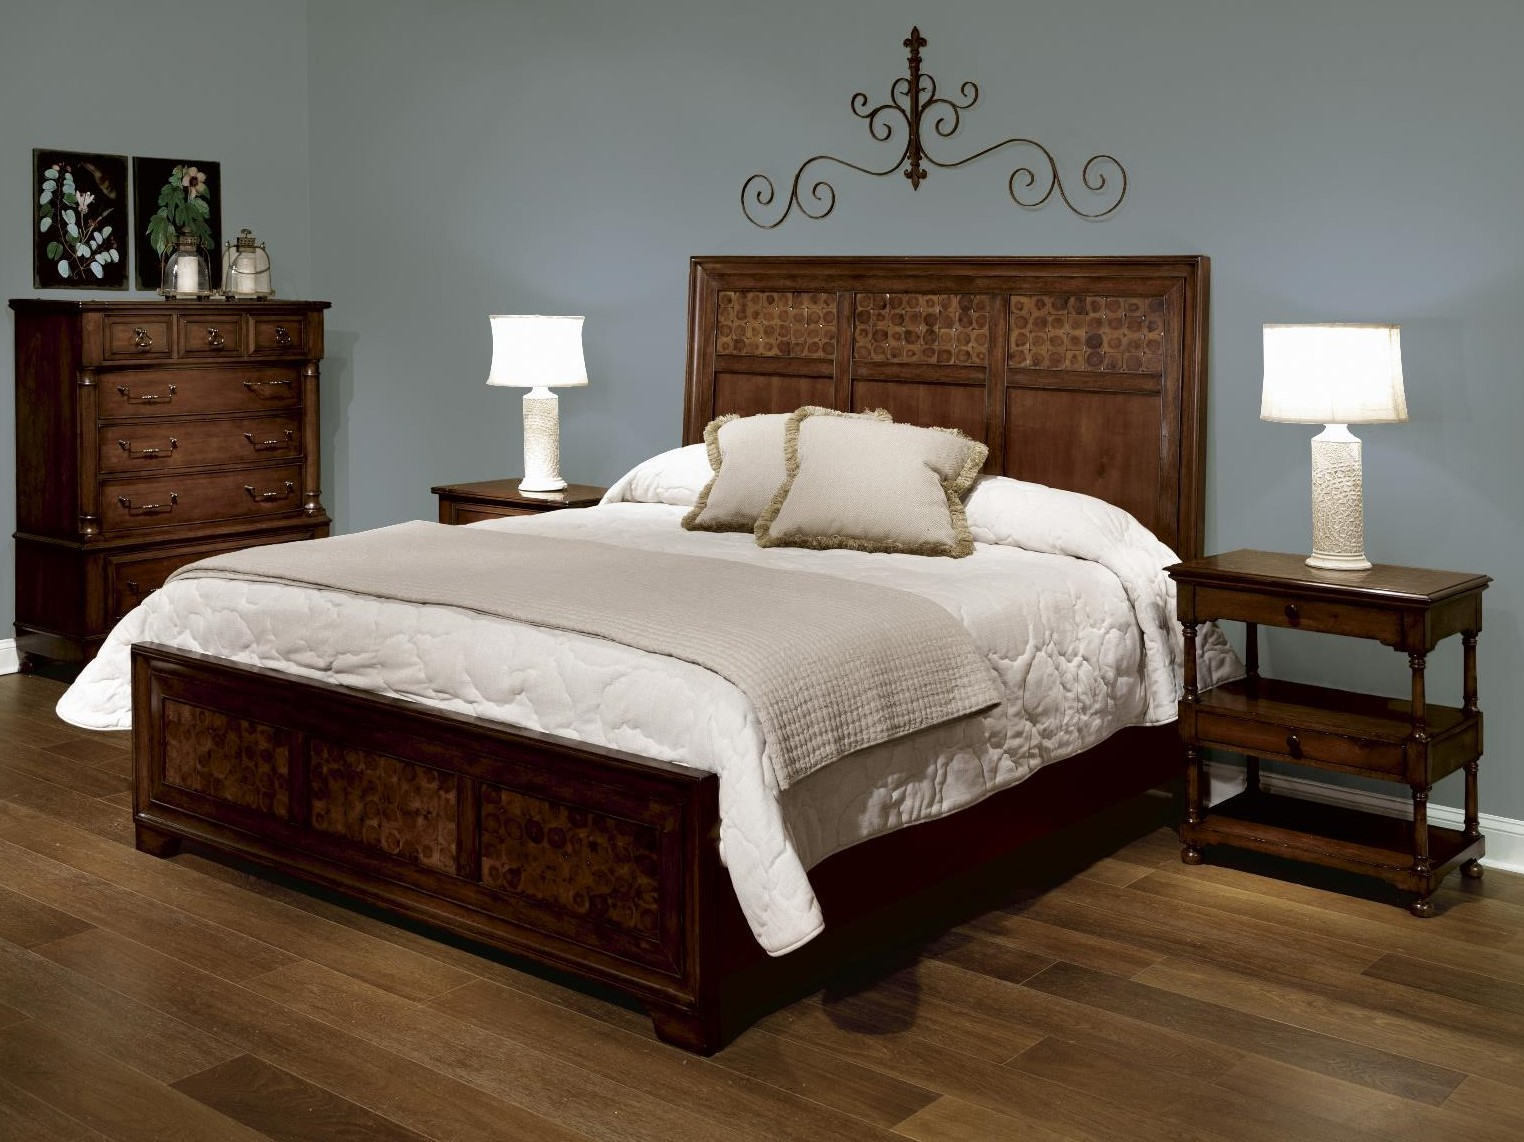 Featured furniture is the Port Panel KING Bed from the Harbor Springs Collection. Notice how it fits the ensemble like a glove? The wood flooring is the ...